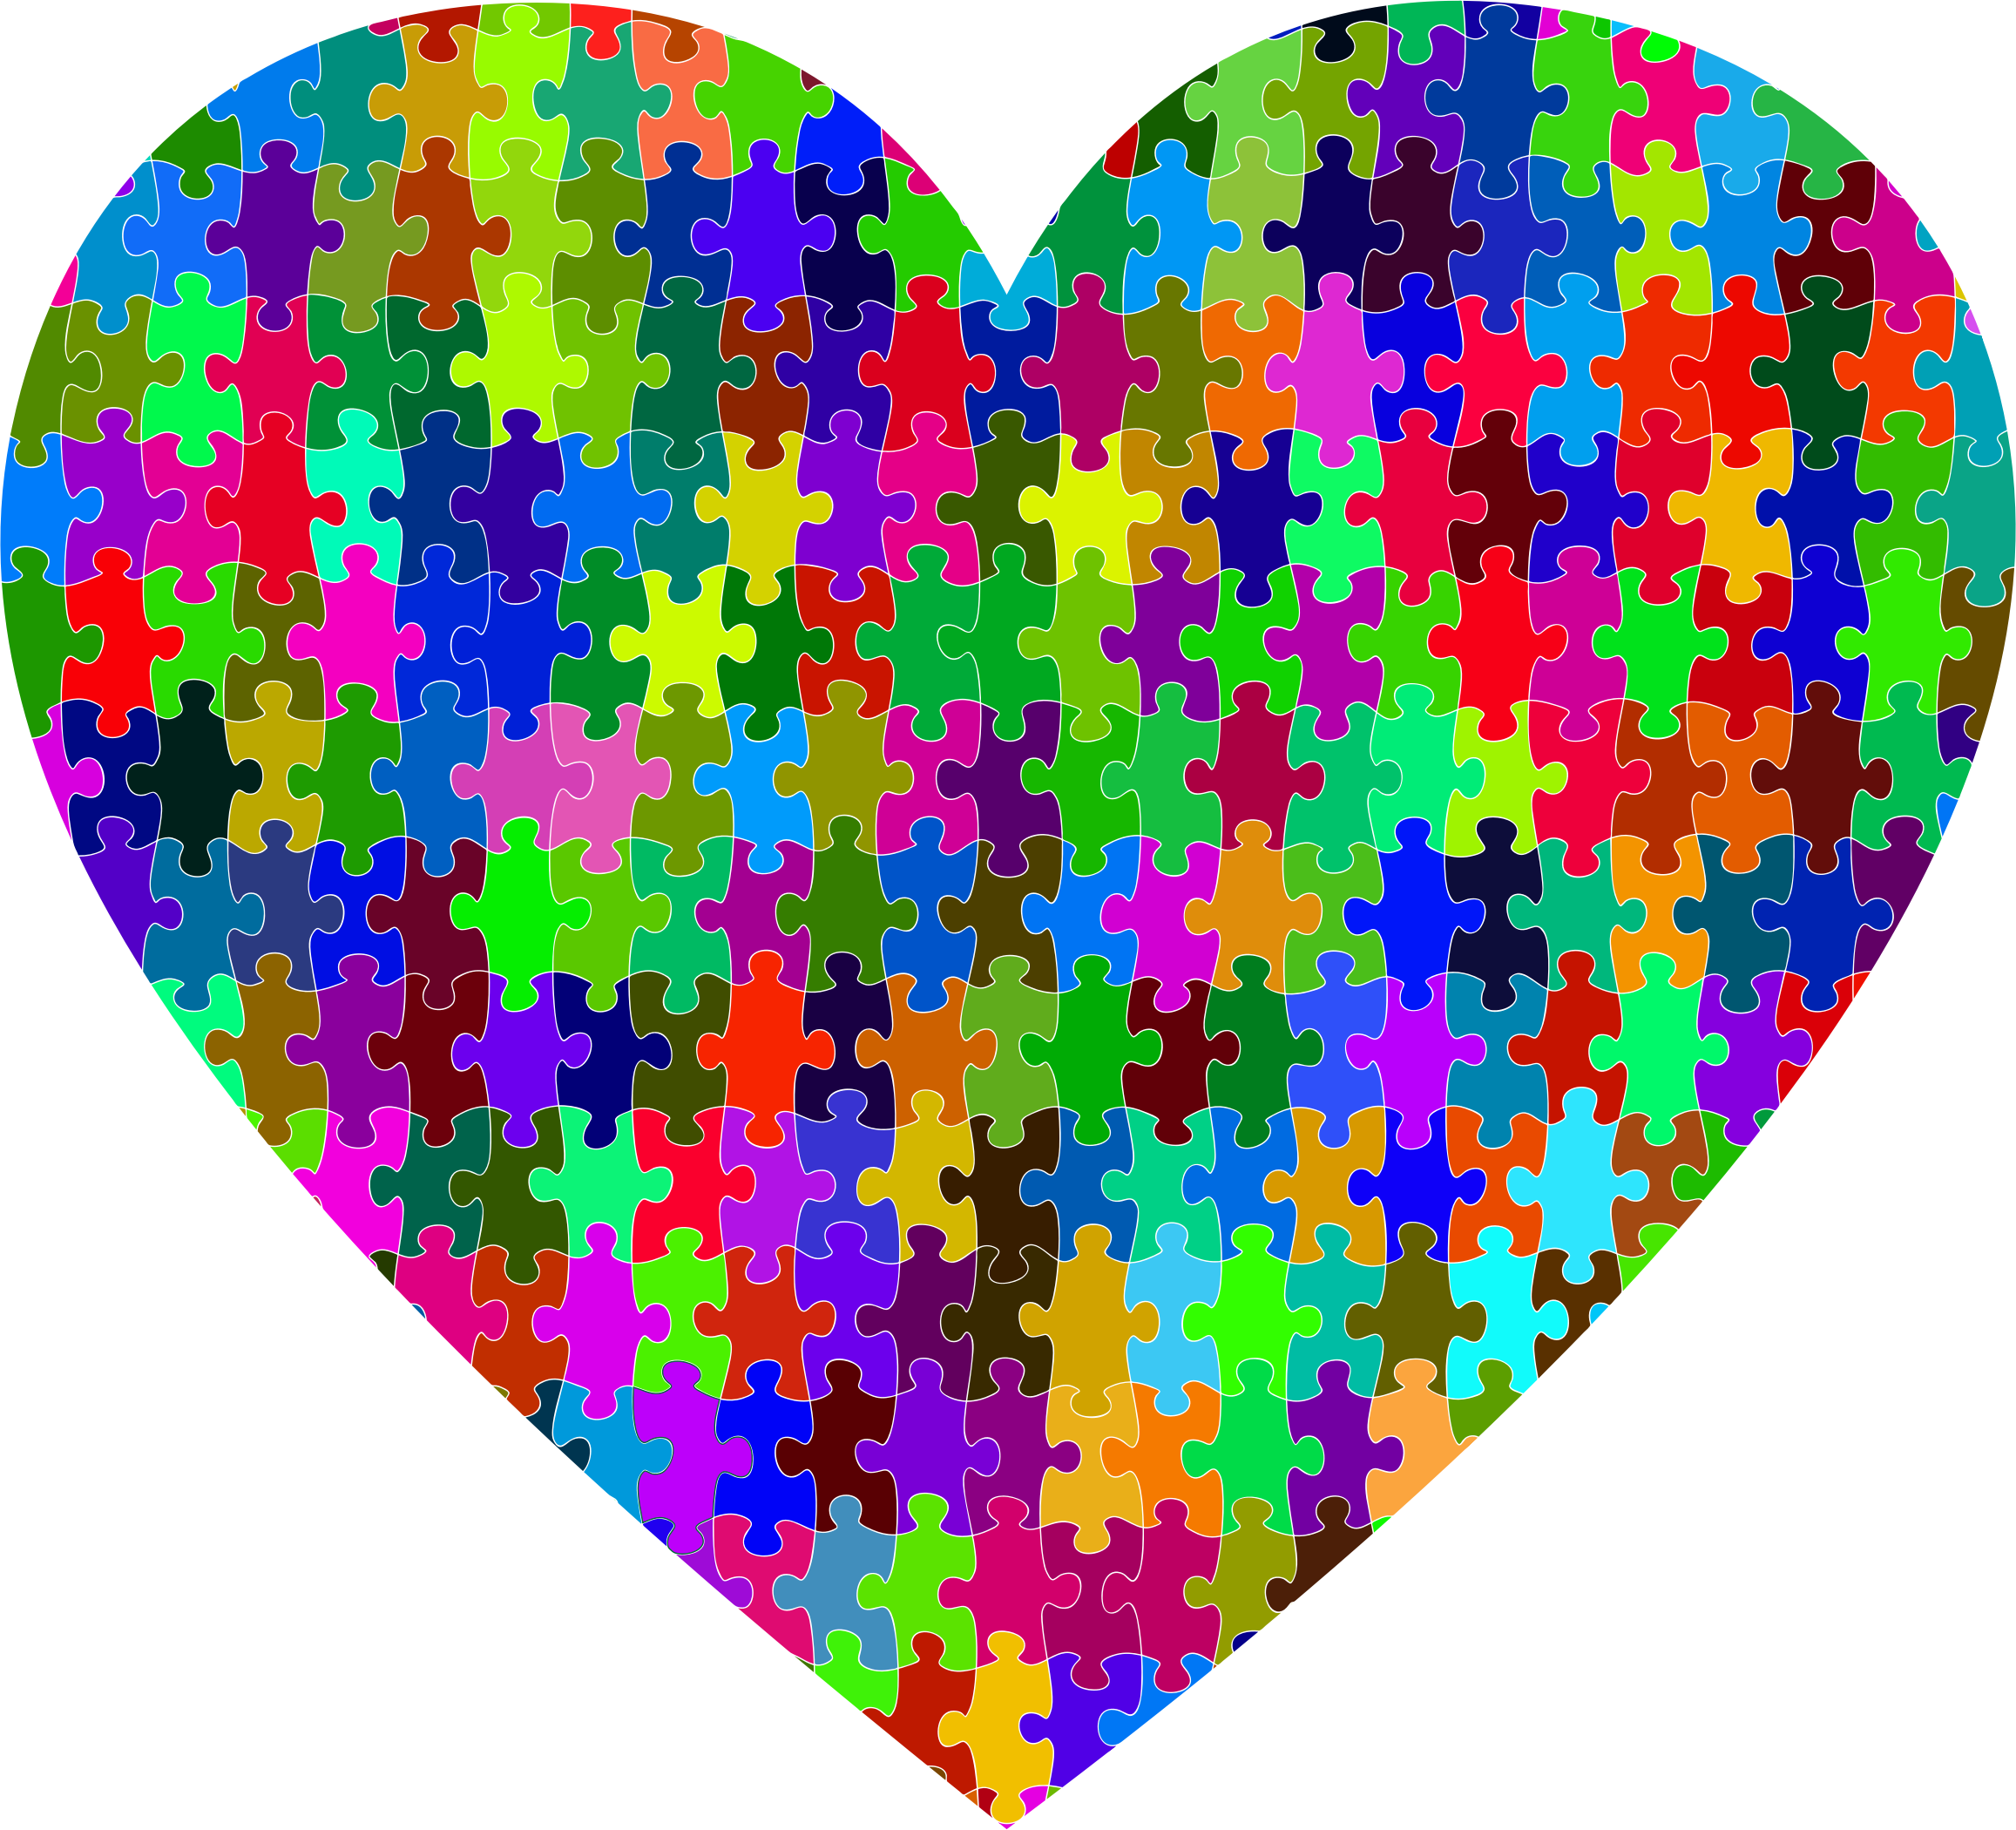 Colorful Puzzle Heart 2 by GDJ